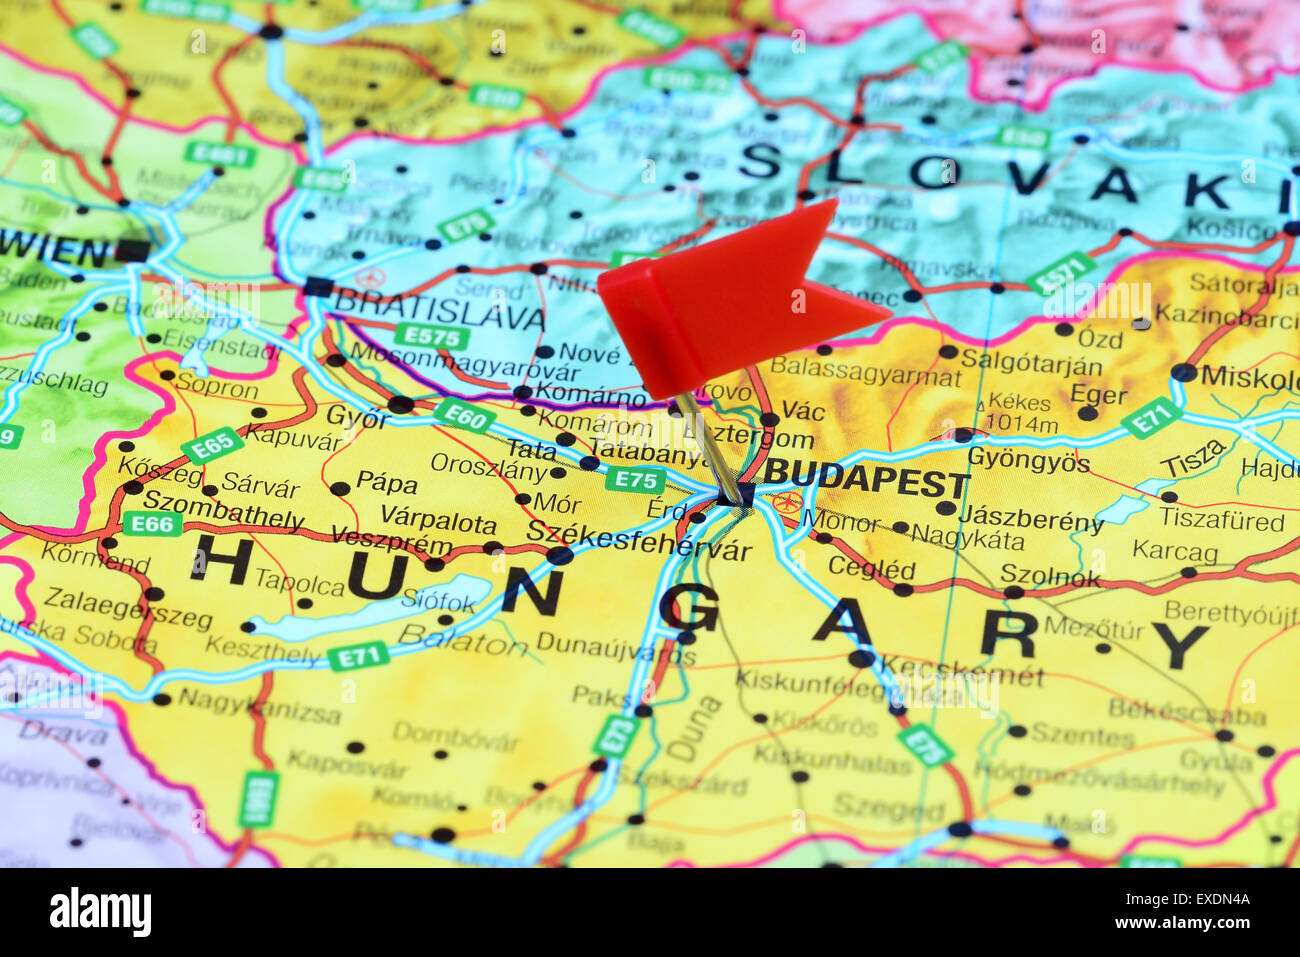 budapest on europe map Budapest Pinned On A Map Of Europe Stock Photo Alamy budapest on europe map